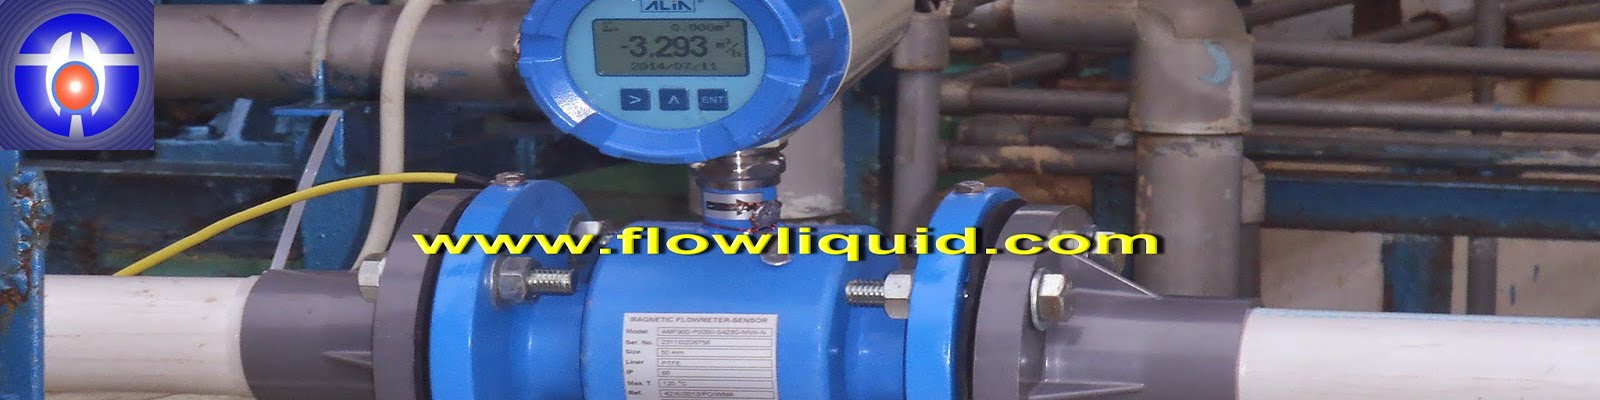 Flow Meter Indonesia - Flow meter air, flowmeter solar, gas, Ultrasonic, Vortex, Electromagnetic